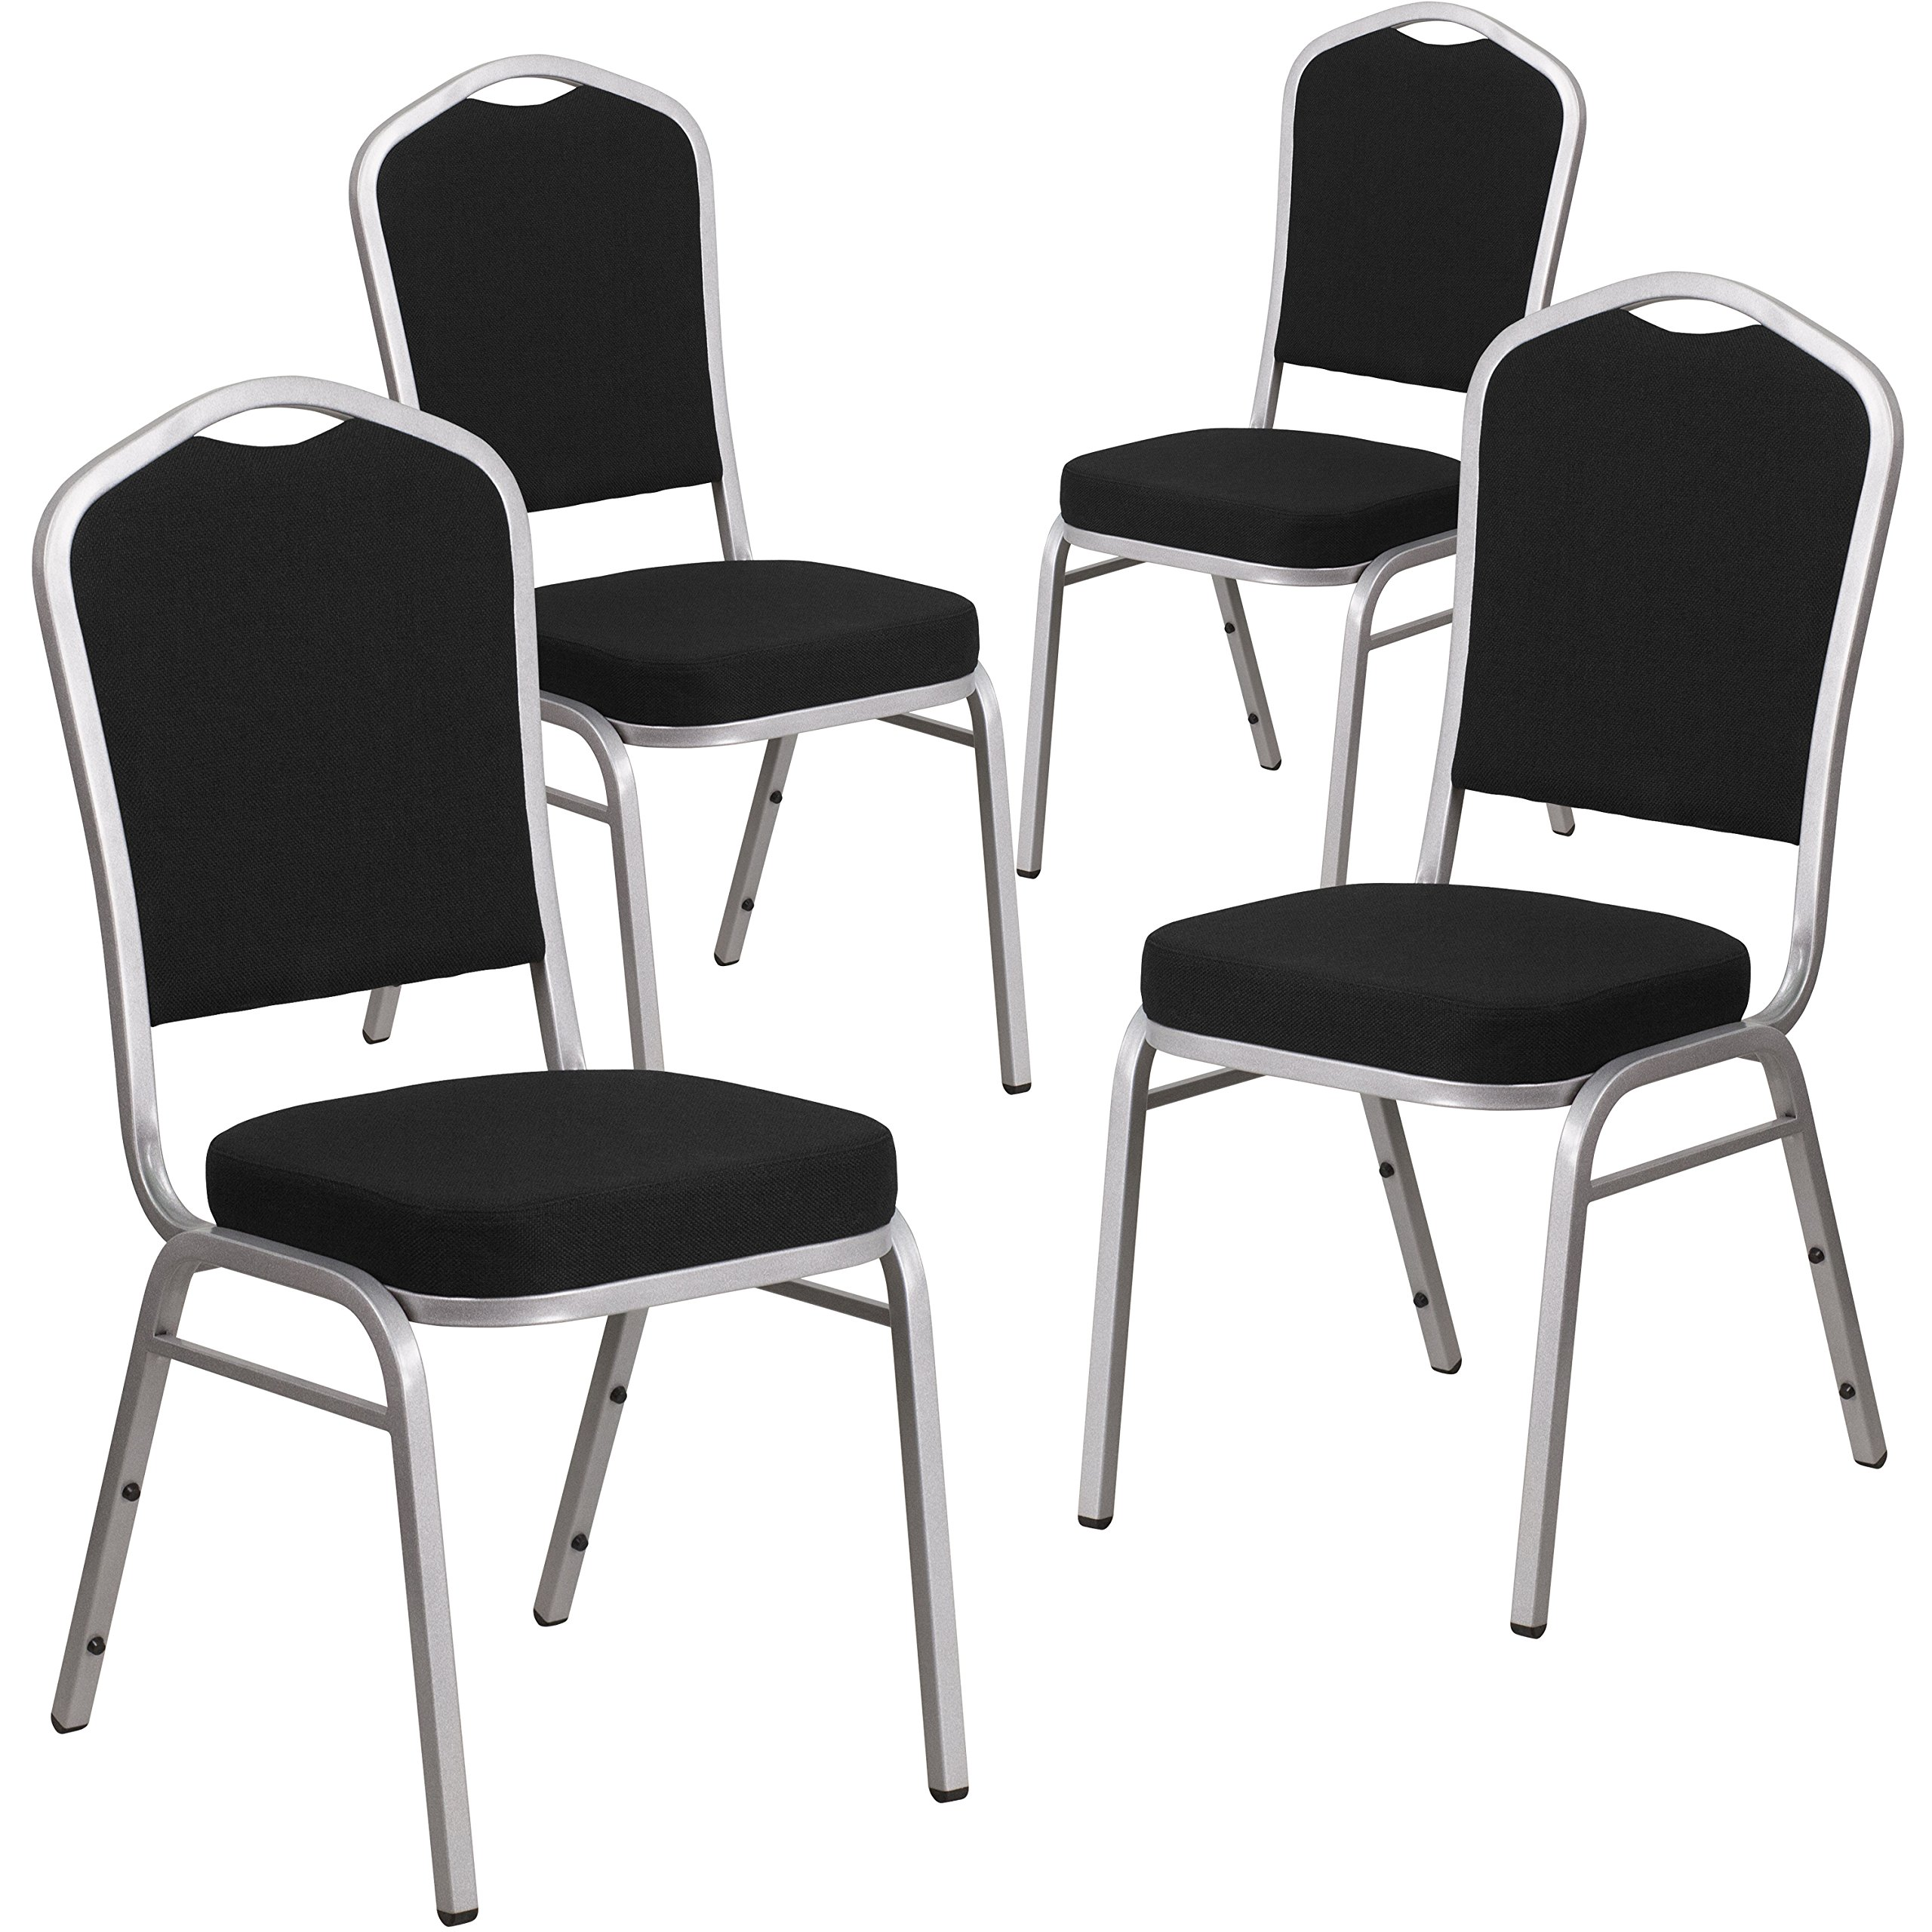 Flash Furniture 4 Pk. HERCULES Series Crown Back Stacking Banquet Chair in Black Fabric - Silver Frame